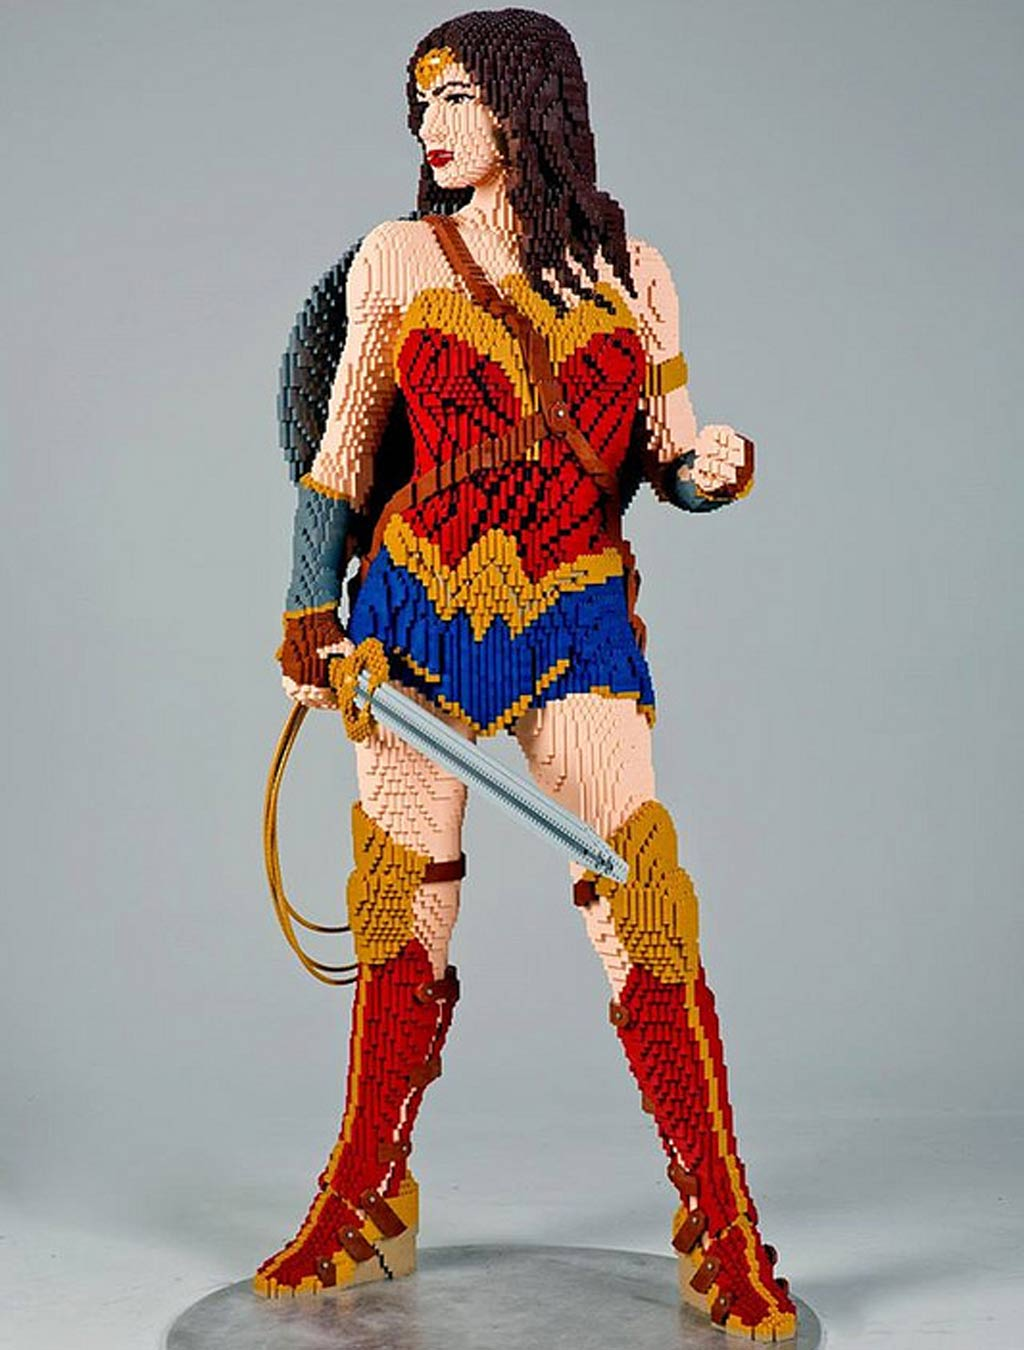 Steinige Wonder Woman | © LEGO Group